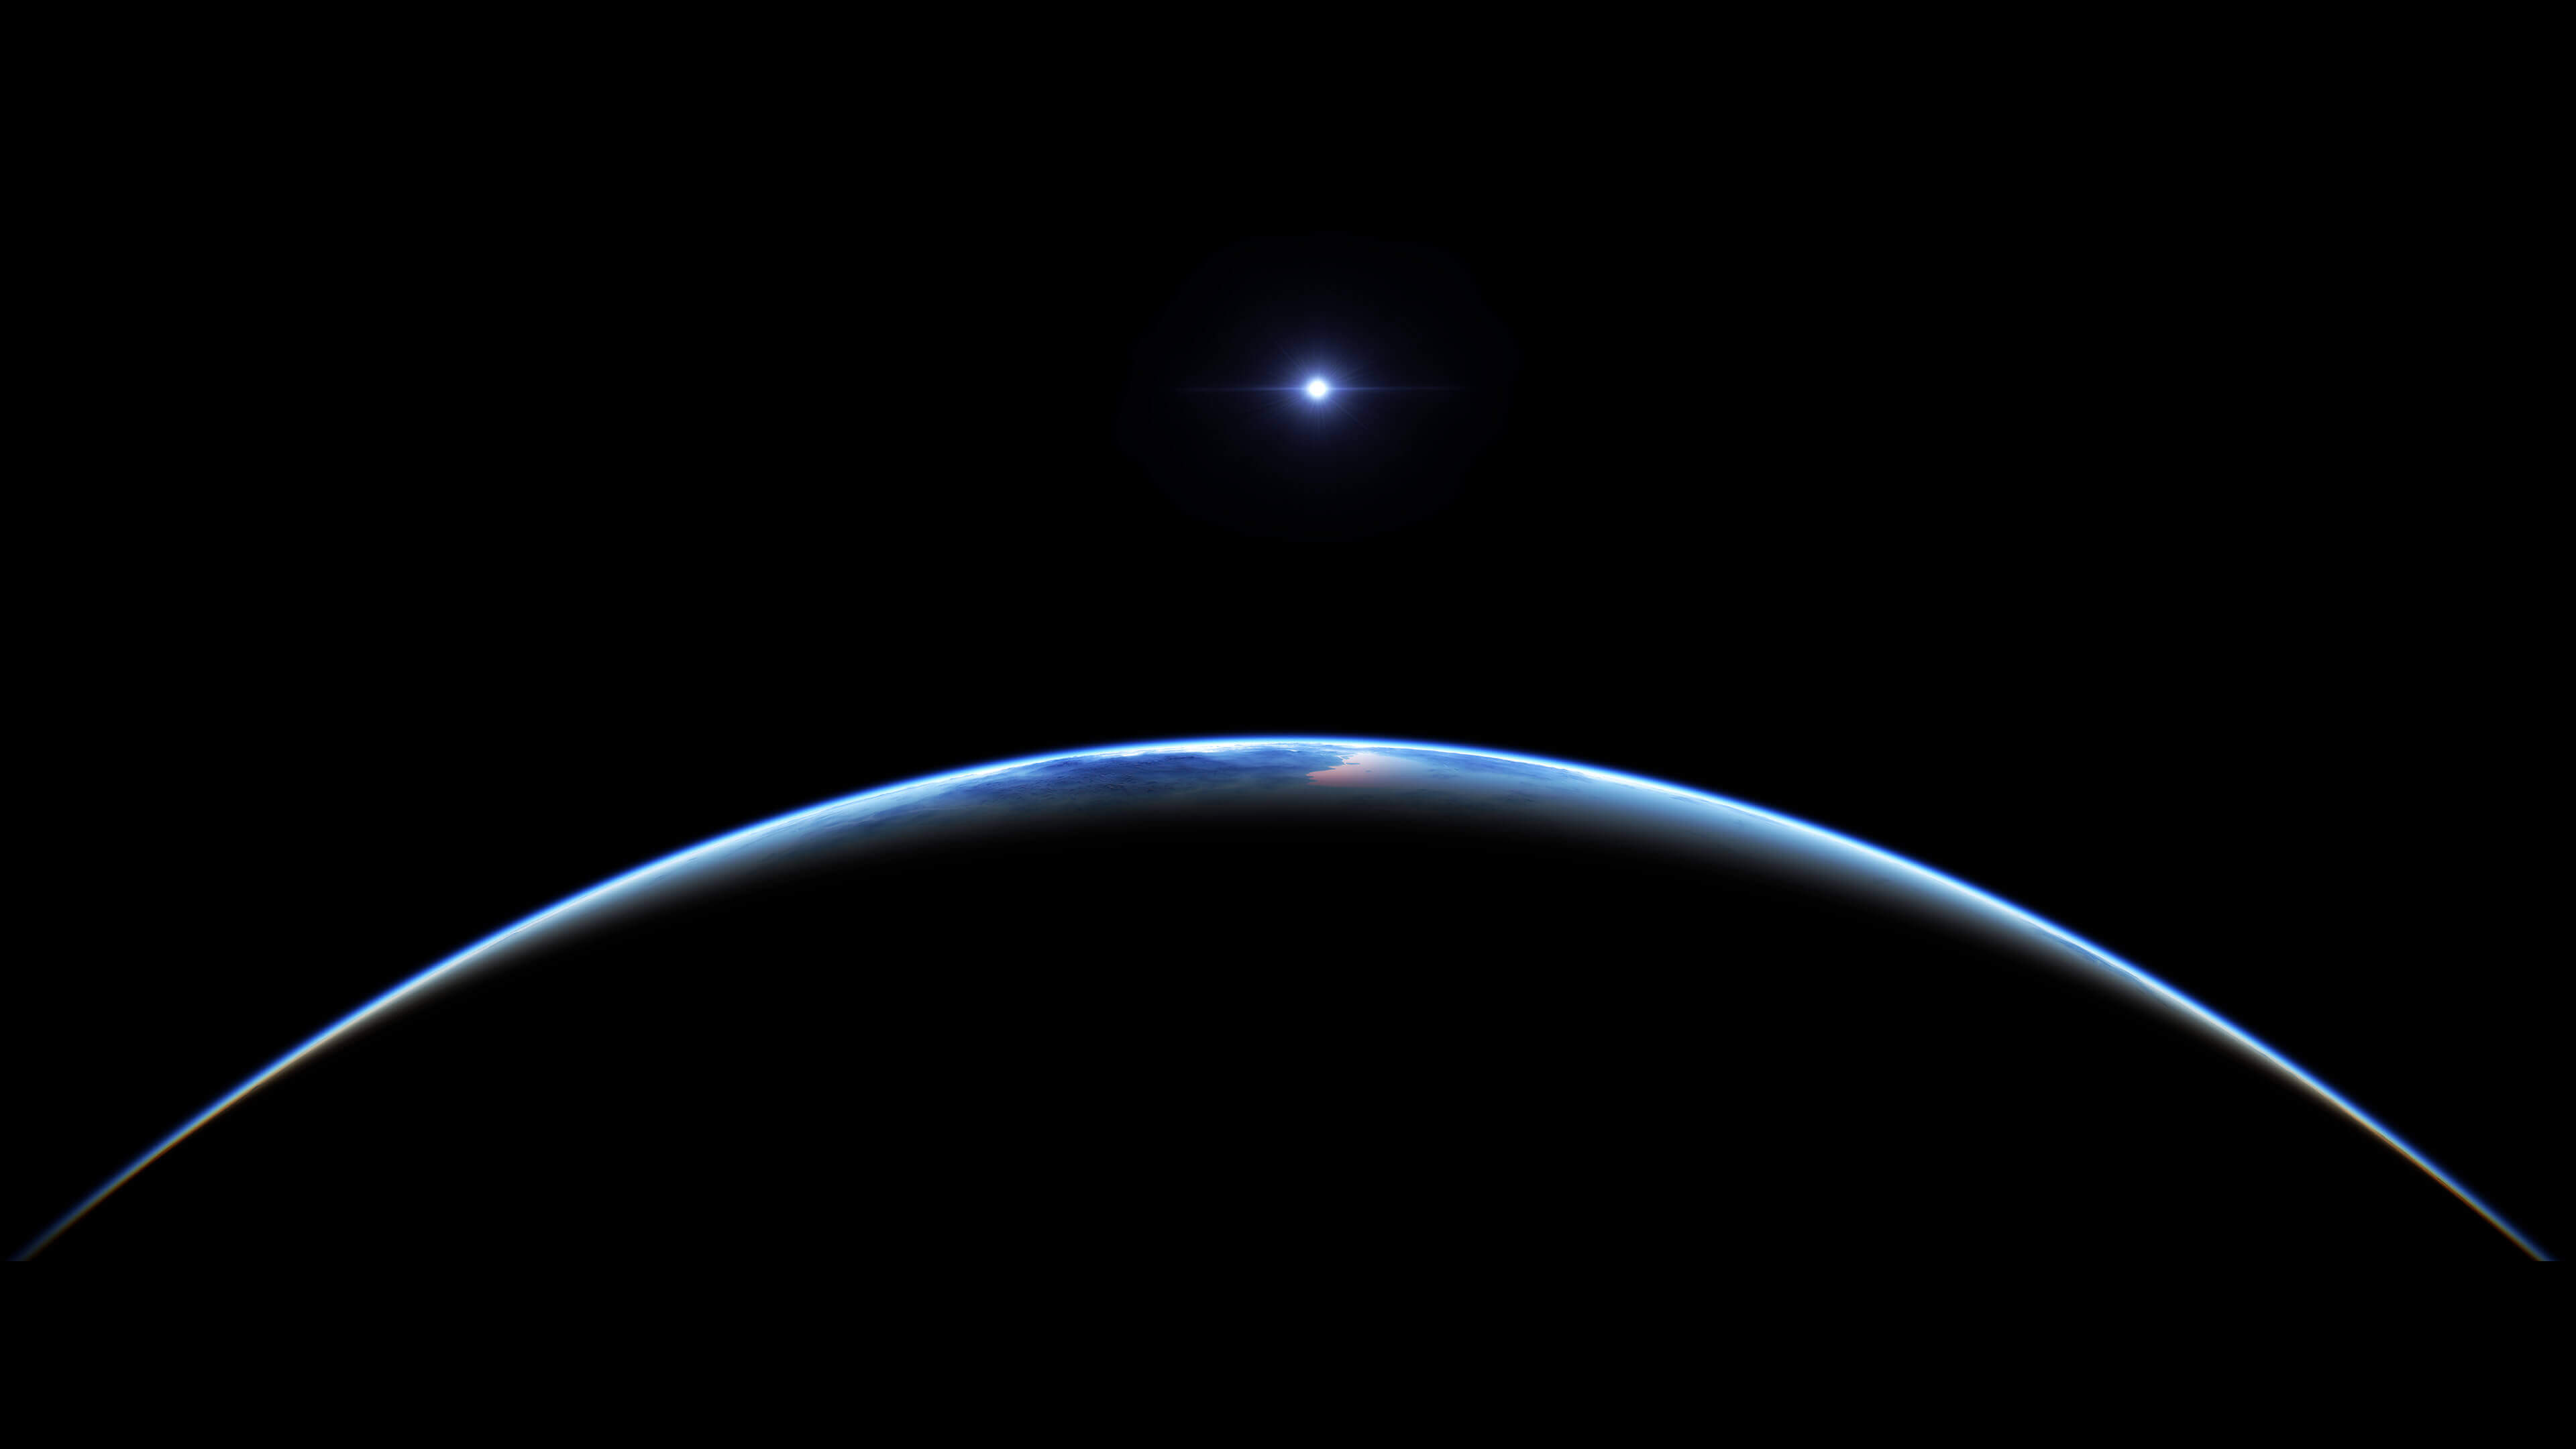 Free Download Earth At Night View From Space 4k Wallpaper